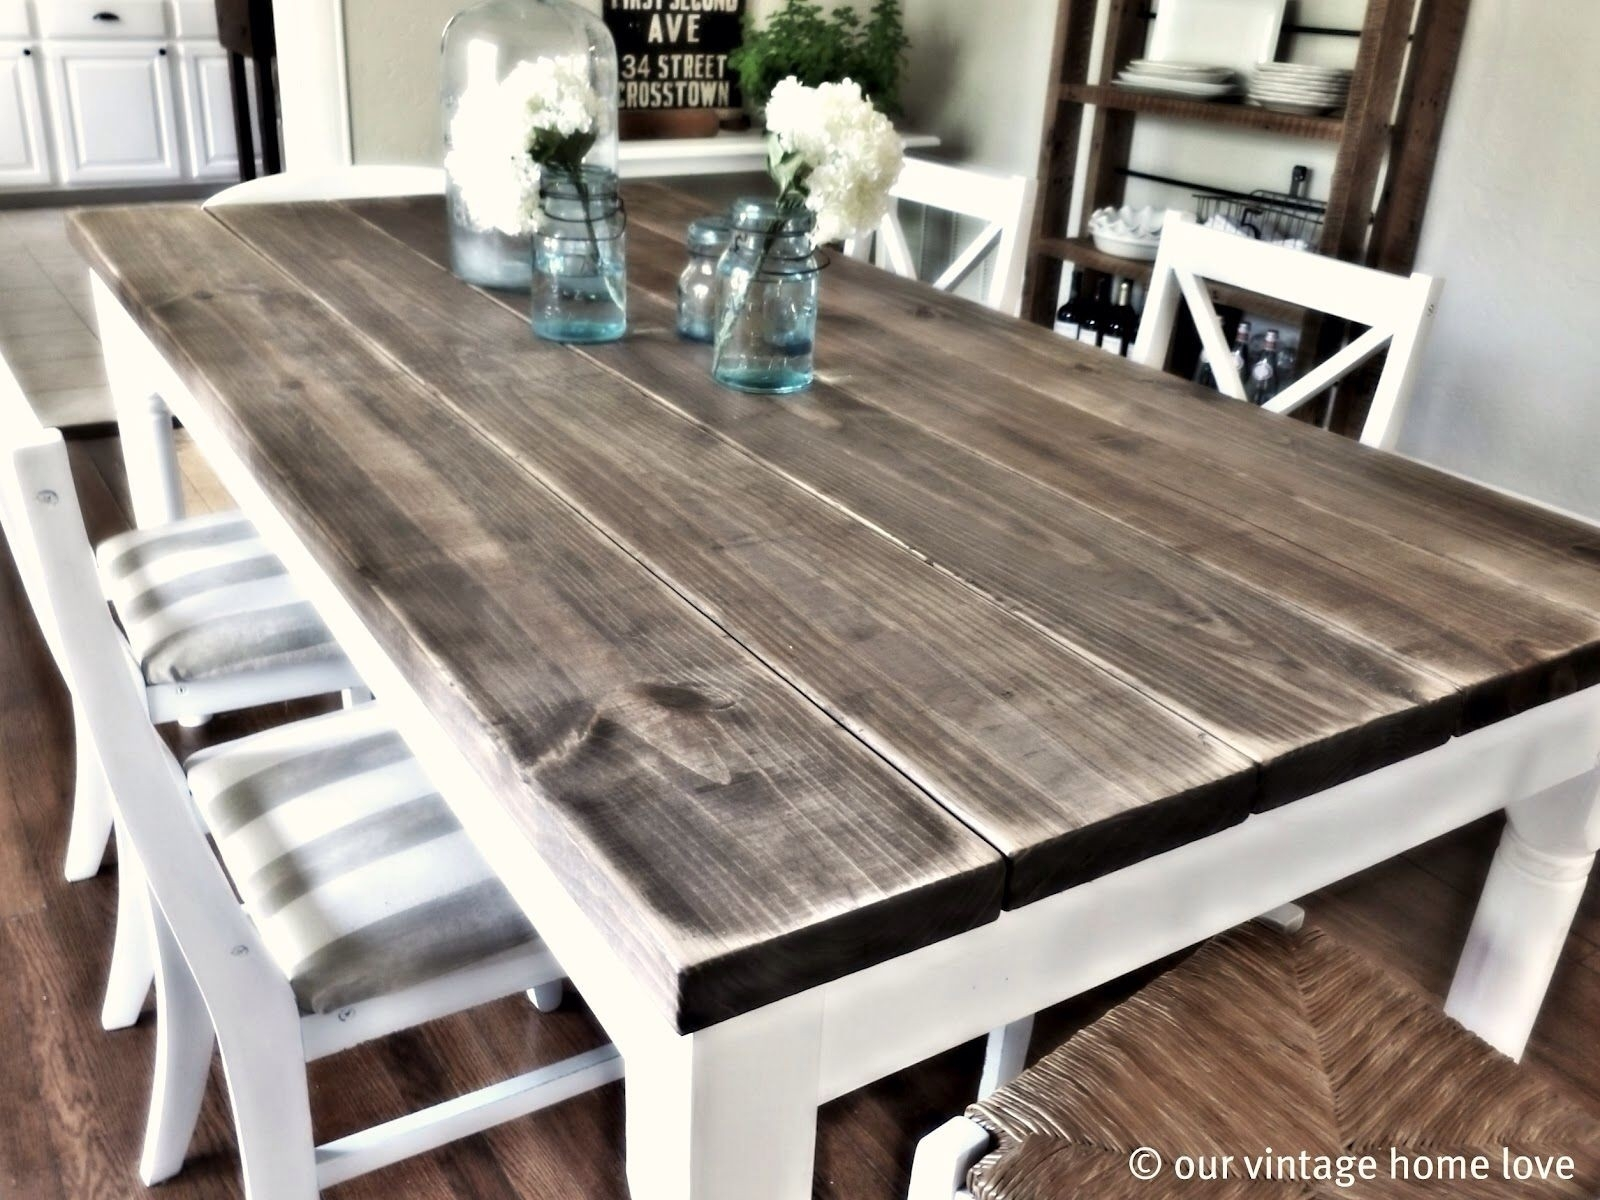 Long Wooden Dining Table Inspirational Impressive Farm Dining Tables Intended For 2018 Farm Dining Tables (View 6 of 20)